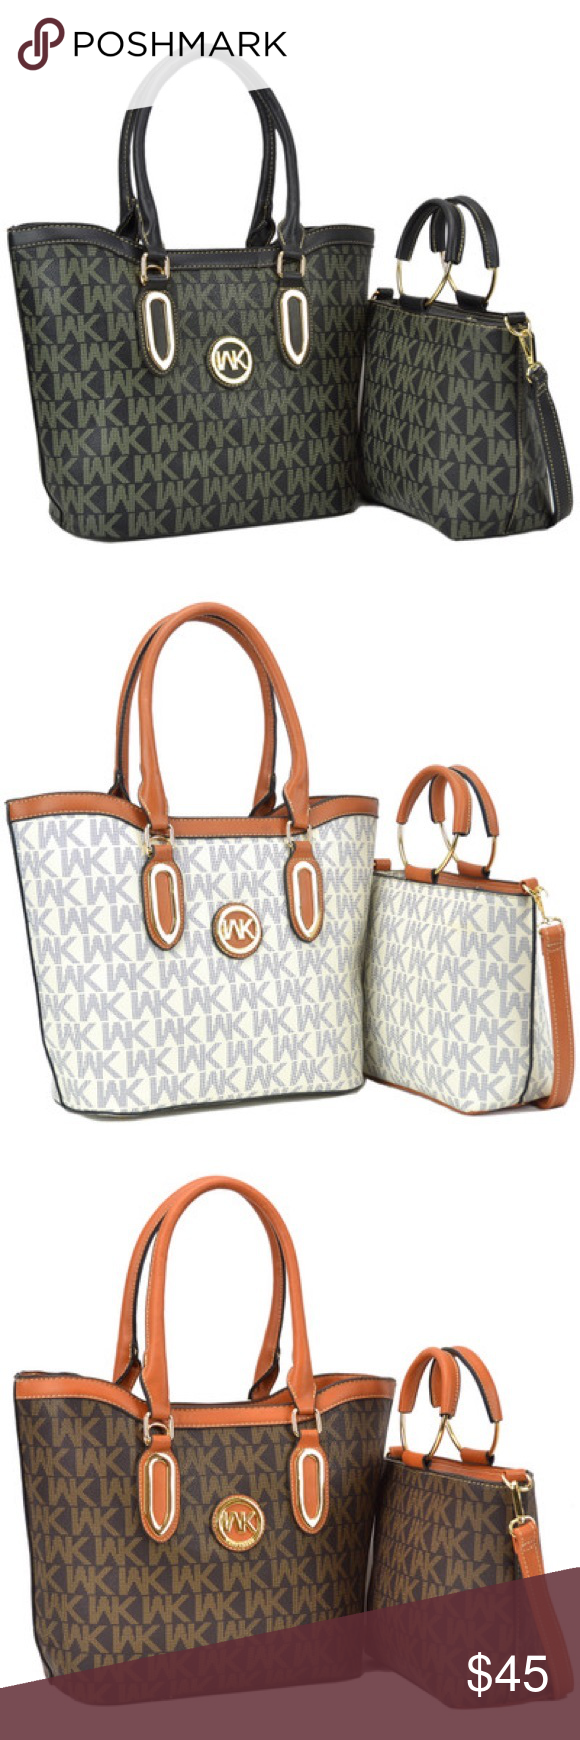 8ee0fba61b Wendy Keen Two-in-One Monogram Medium Tote Carry this roomy satchel by the  handles to the office, or use the shoulder strap which is perfect for  errand ...